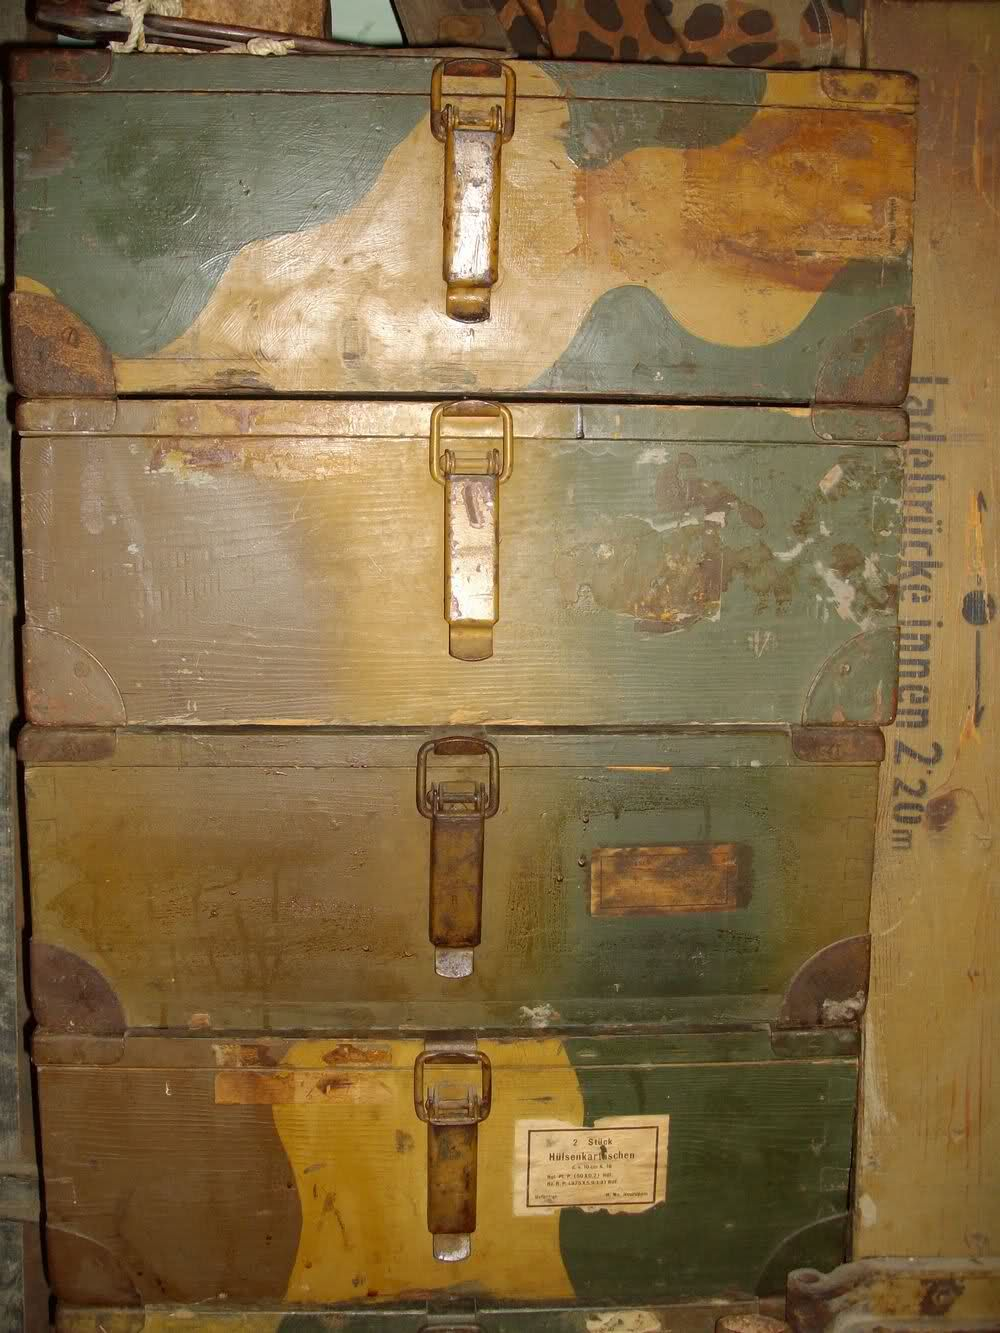 Pin By Ernst Carstens On Buntfarbenanstrich Suitcase